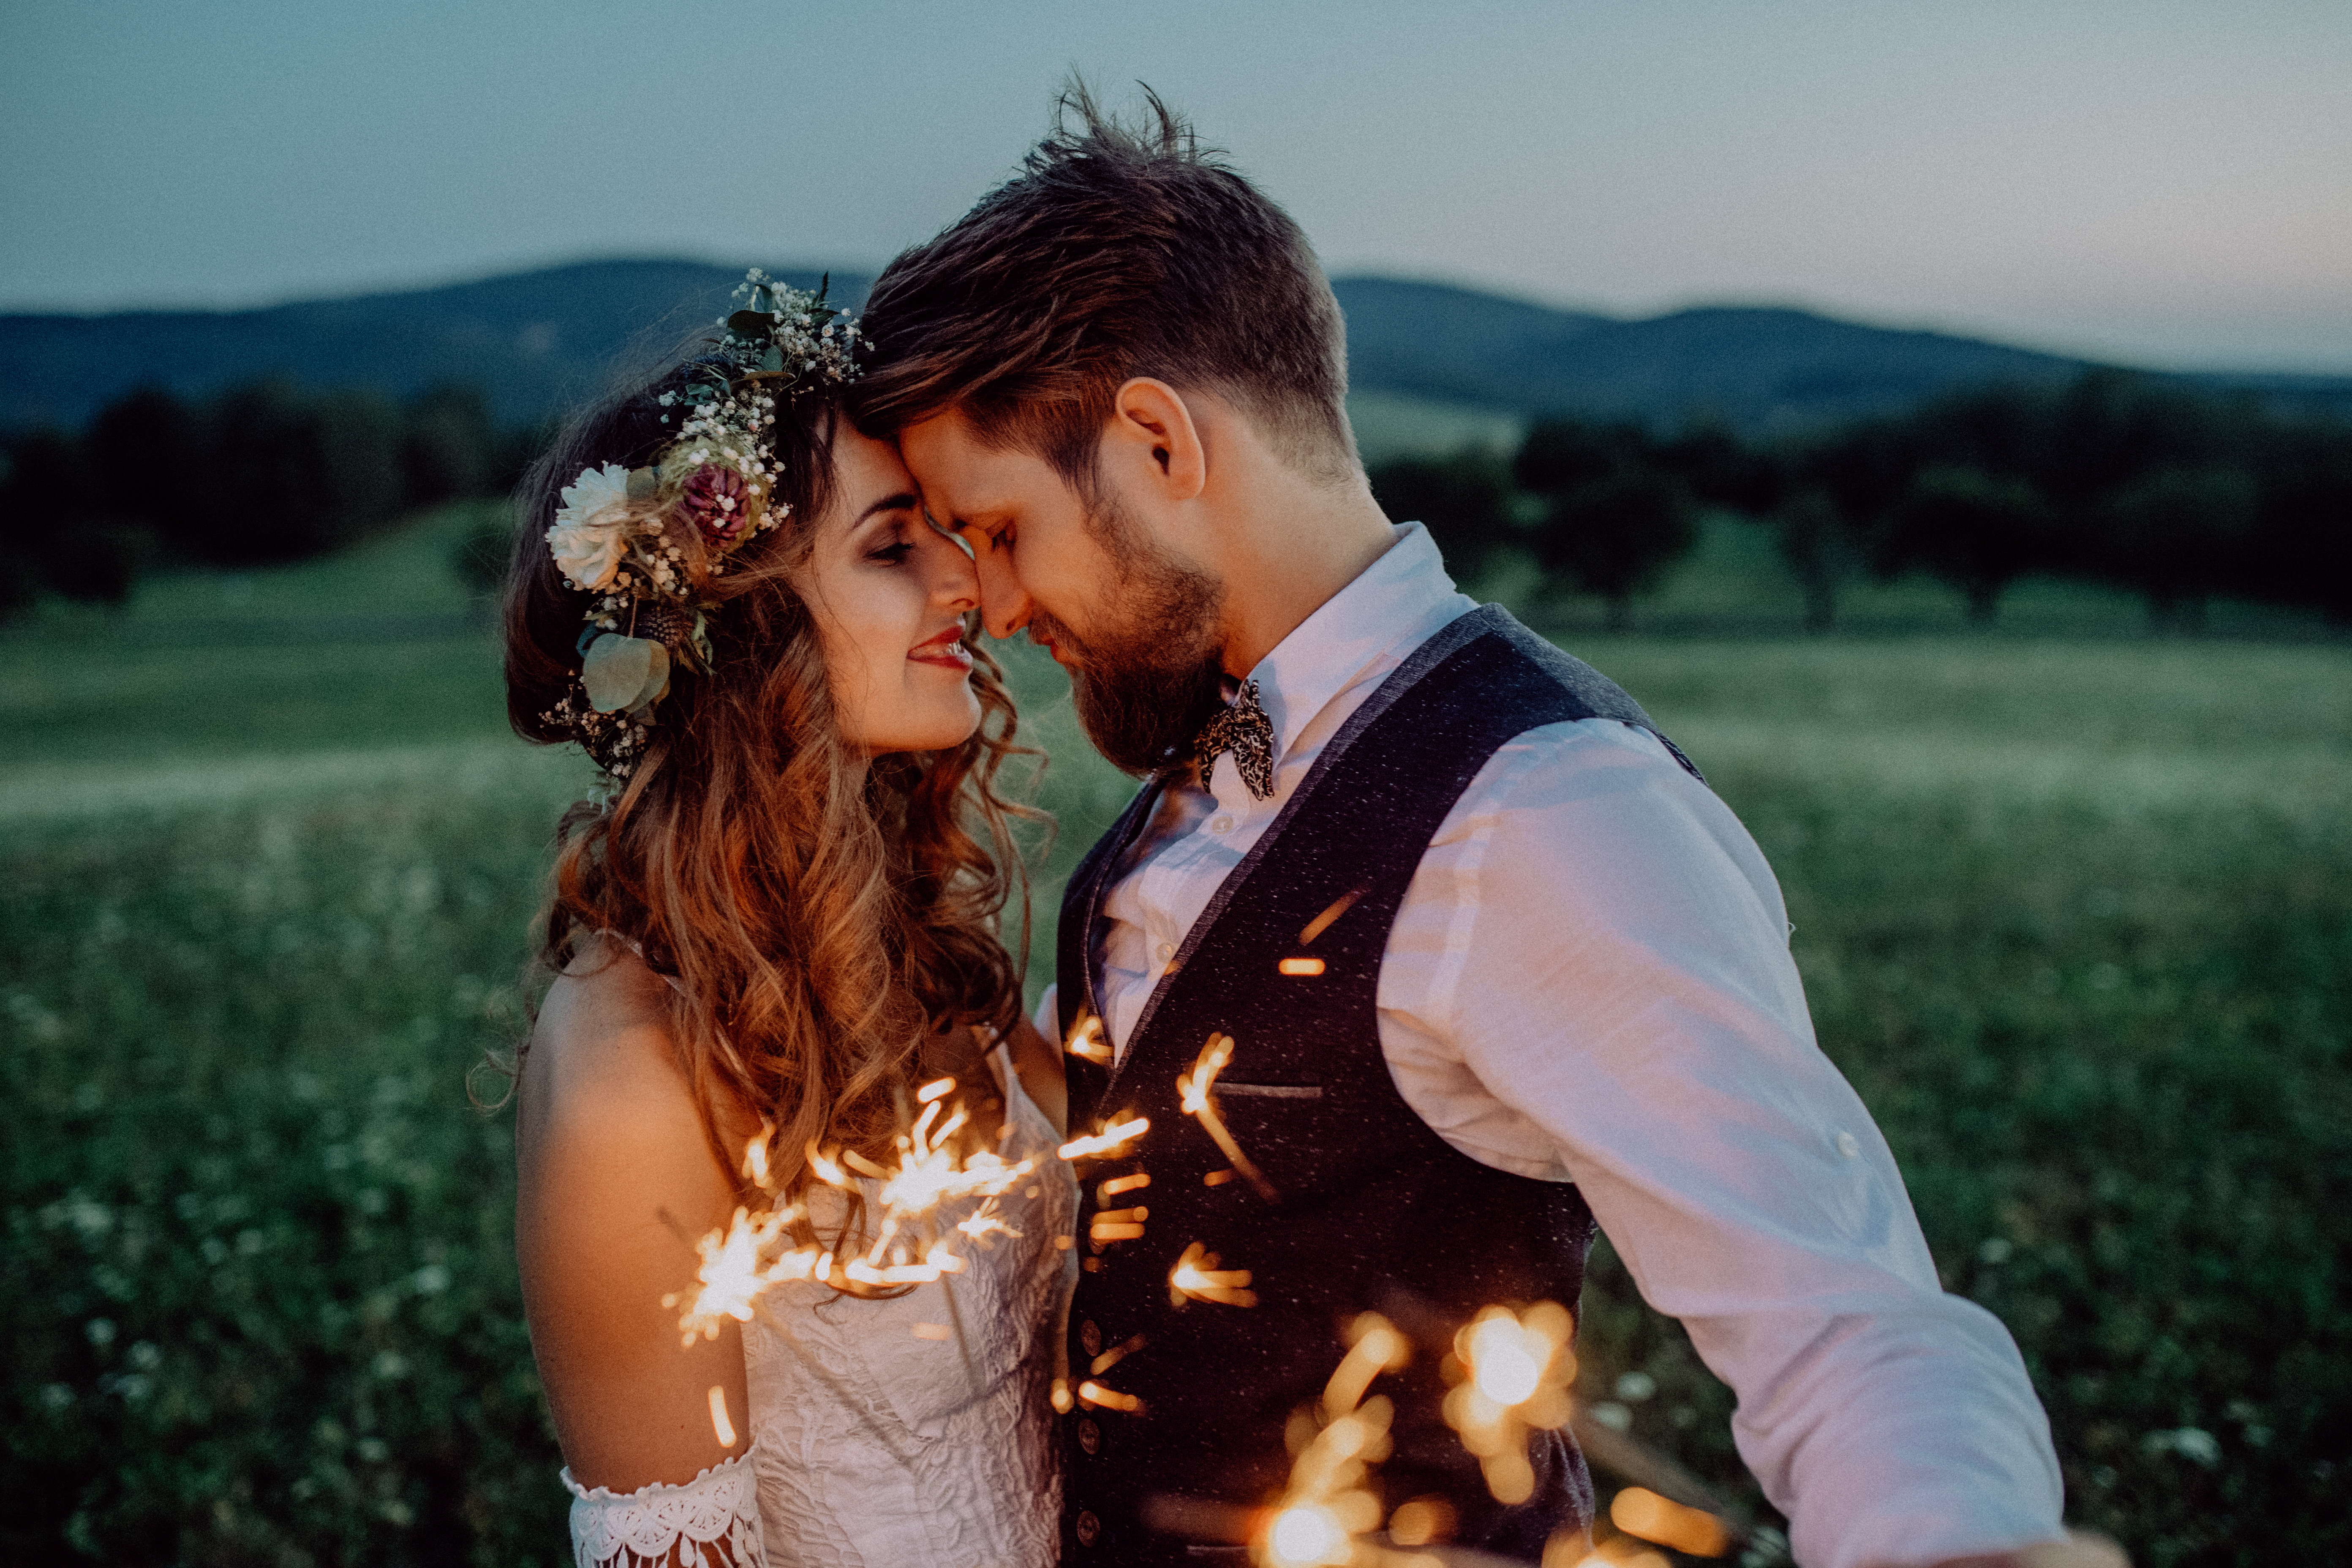 Beautiful bride and groom with sparklers on a meadow